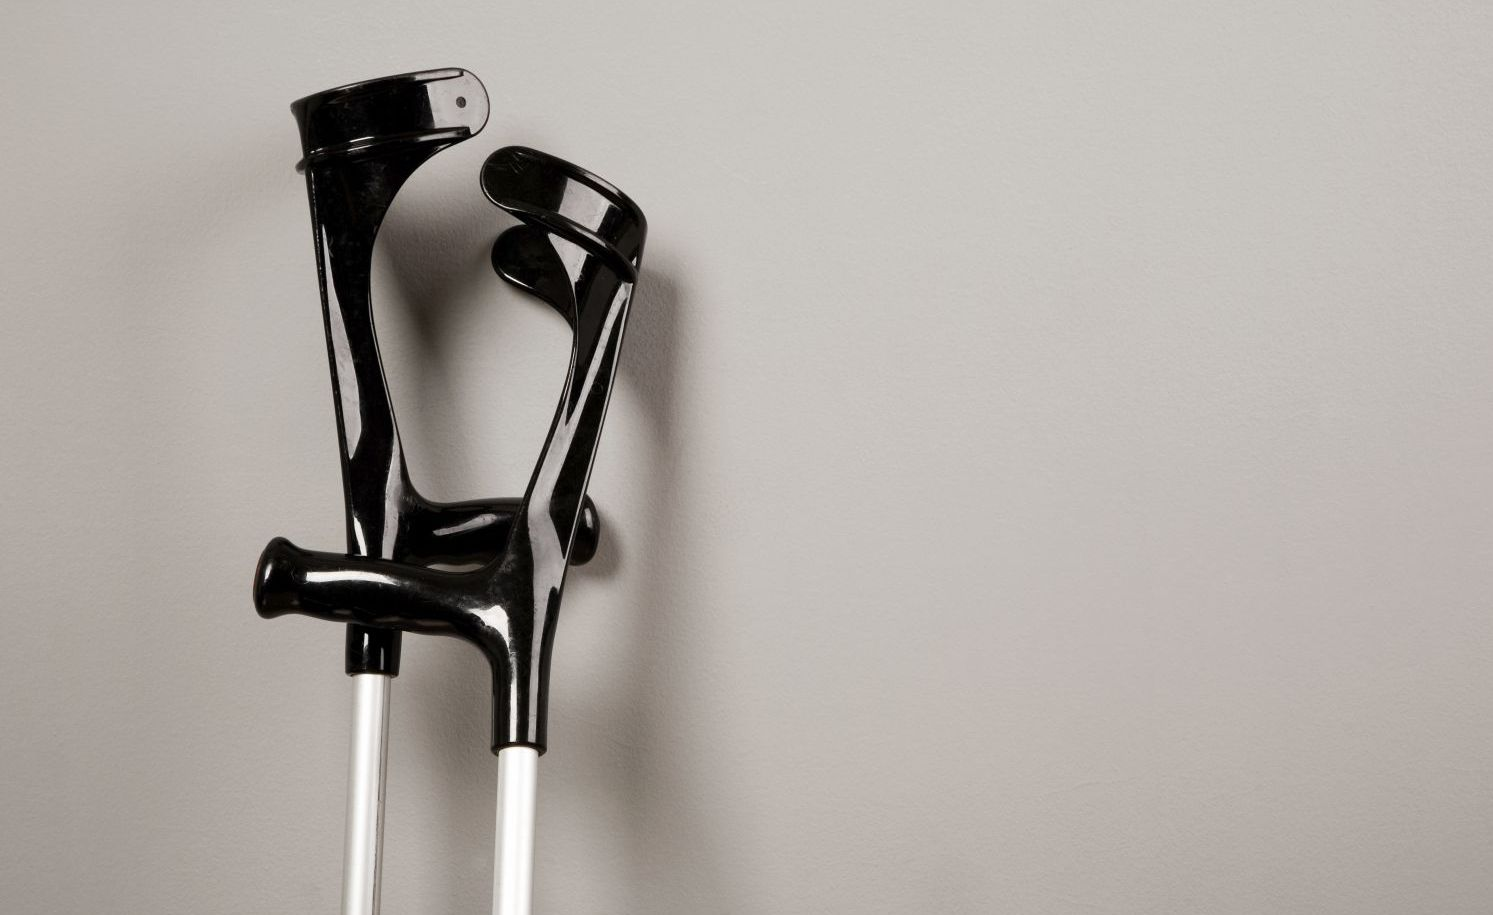 Crutches as symbol for personal injury law